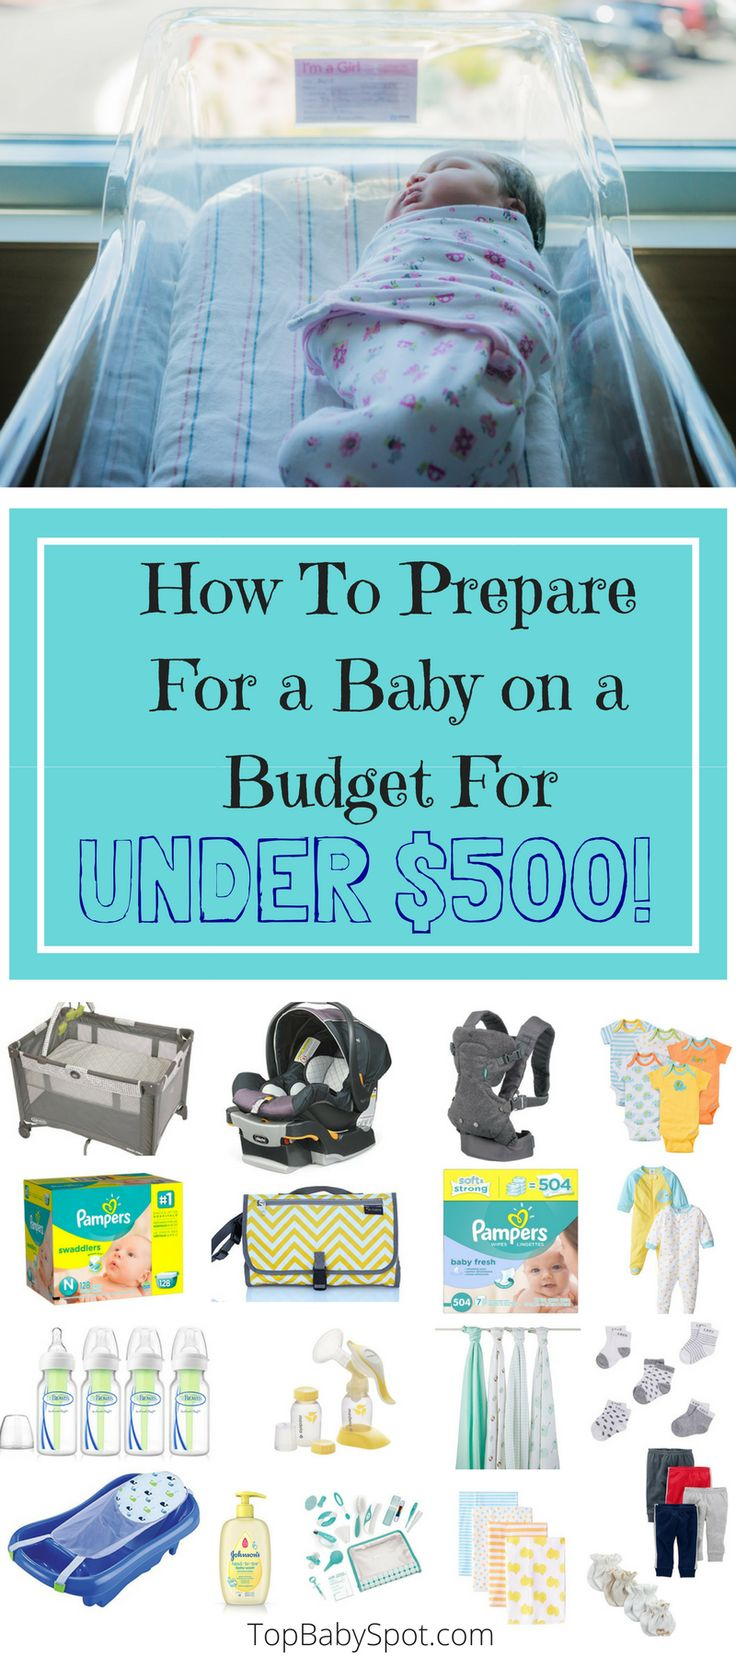 Having a baby doesn't have to break the bank!  Checkout these bare-bone essentials (from a mom of 2) to prepare for your baby for under $500!  A must read for any expectant parent.